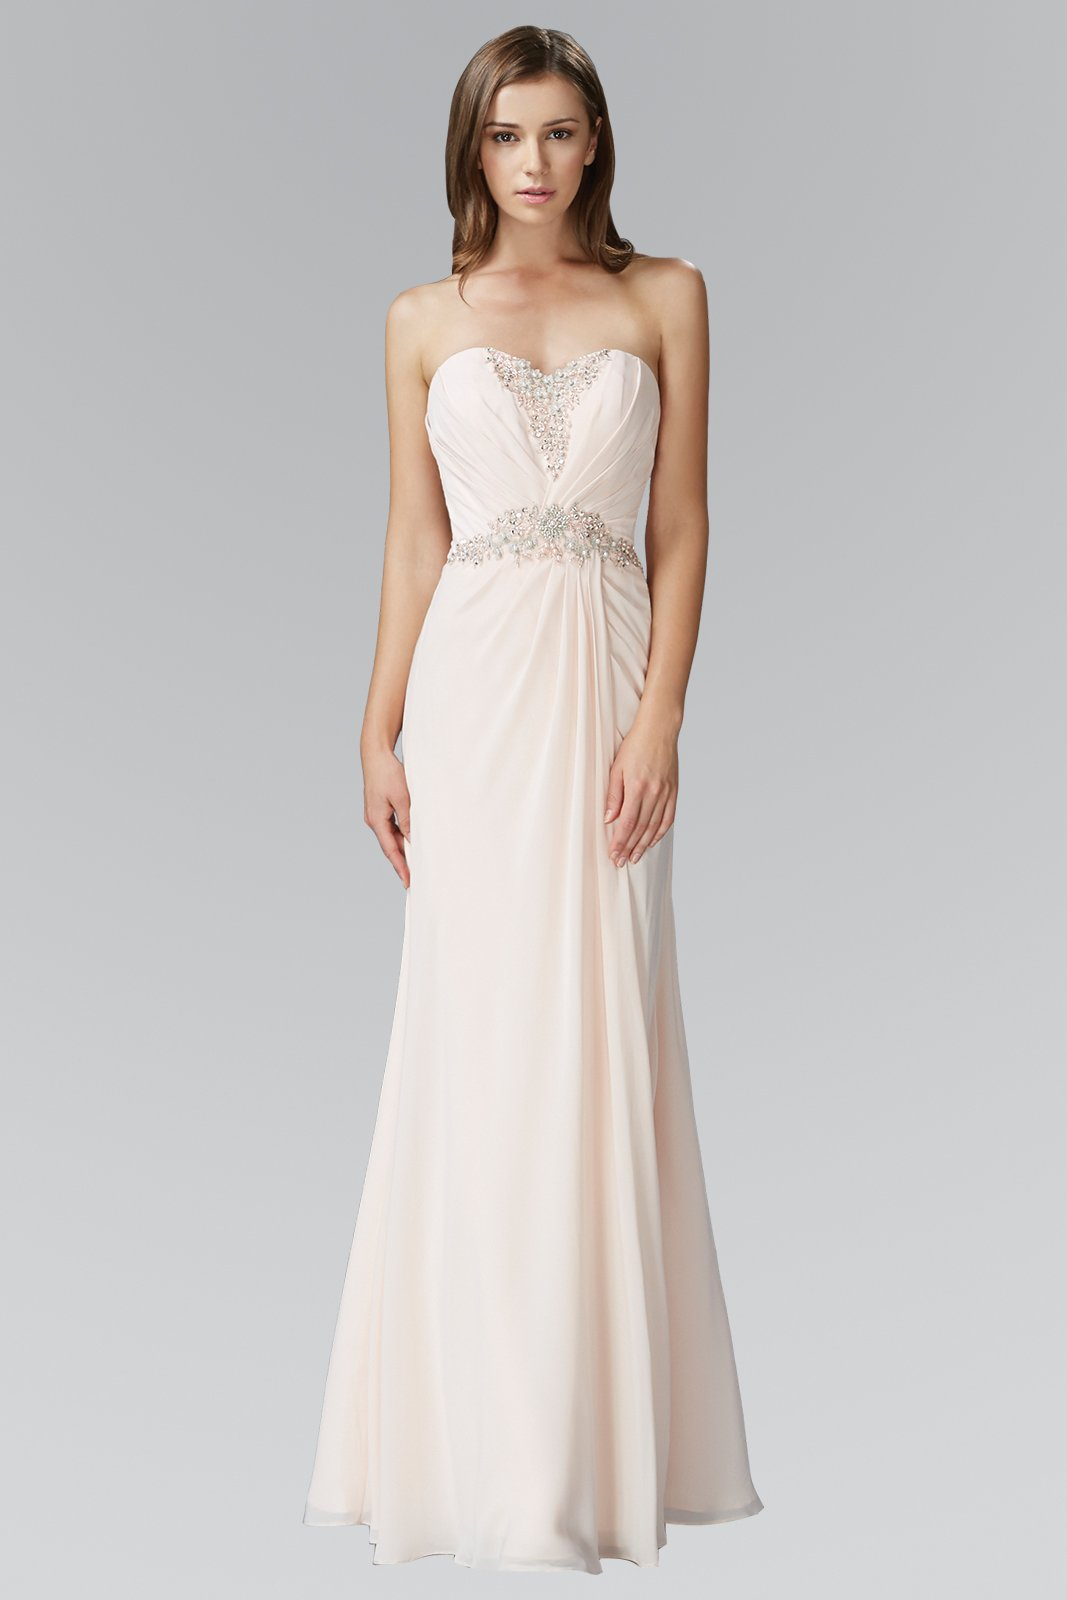 Elizabeth K - GL2060 Crystal Beaded Strapless Sweetheart A-Line Gown In Pink and Neutral